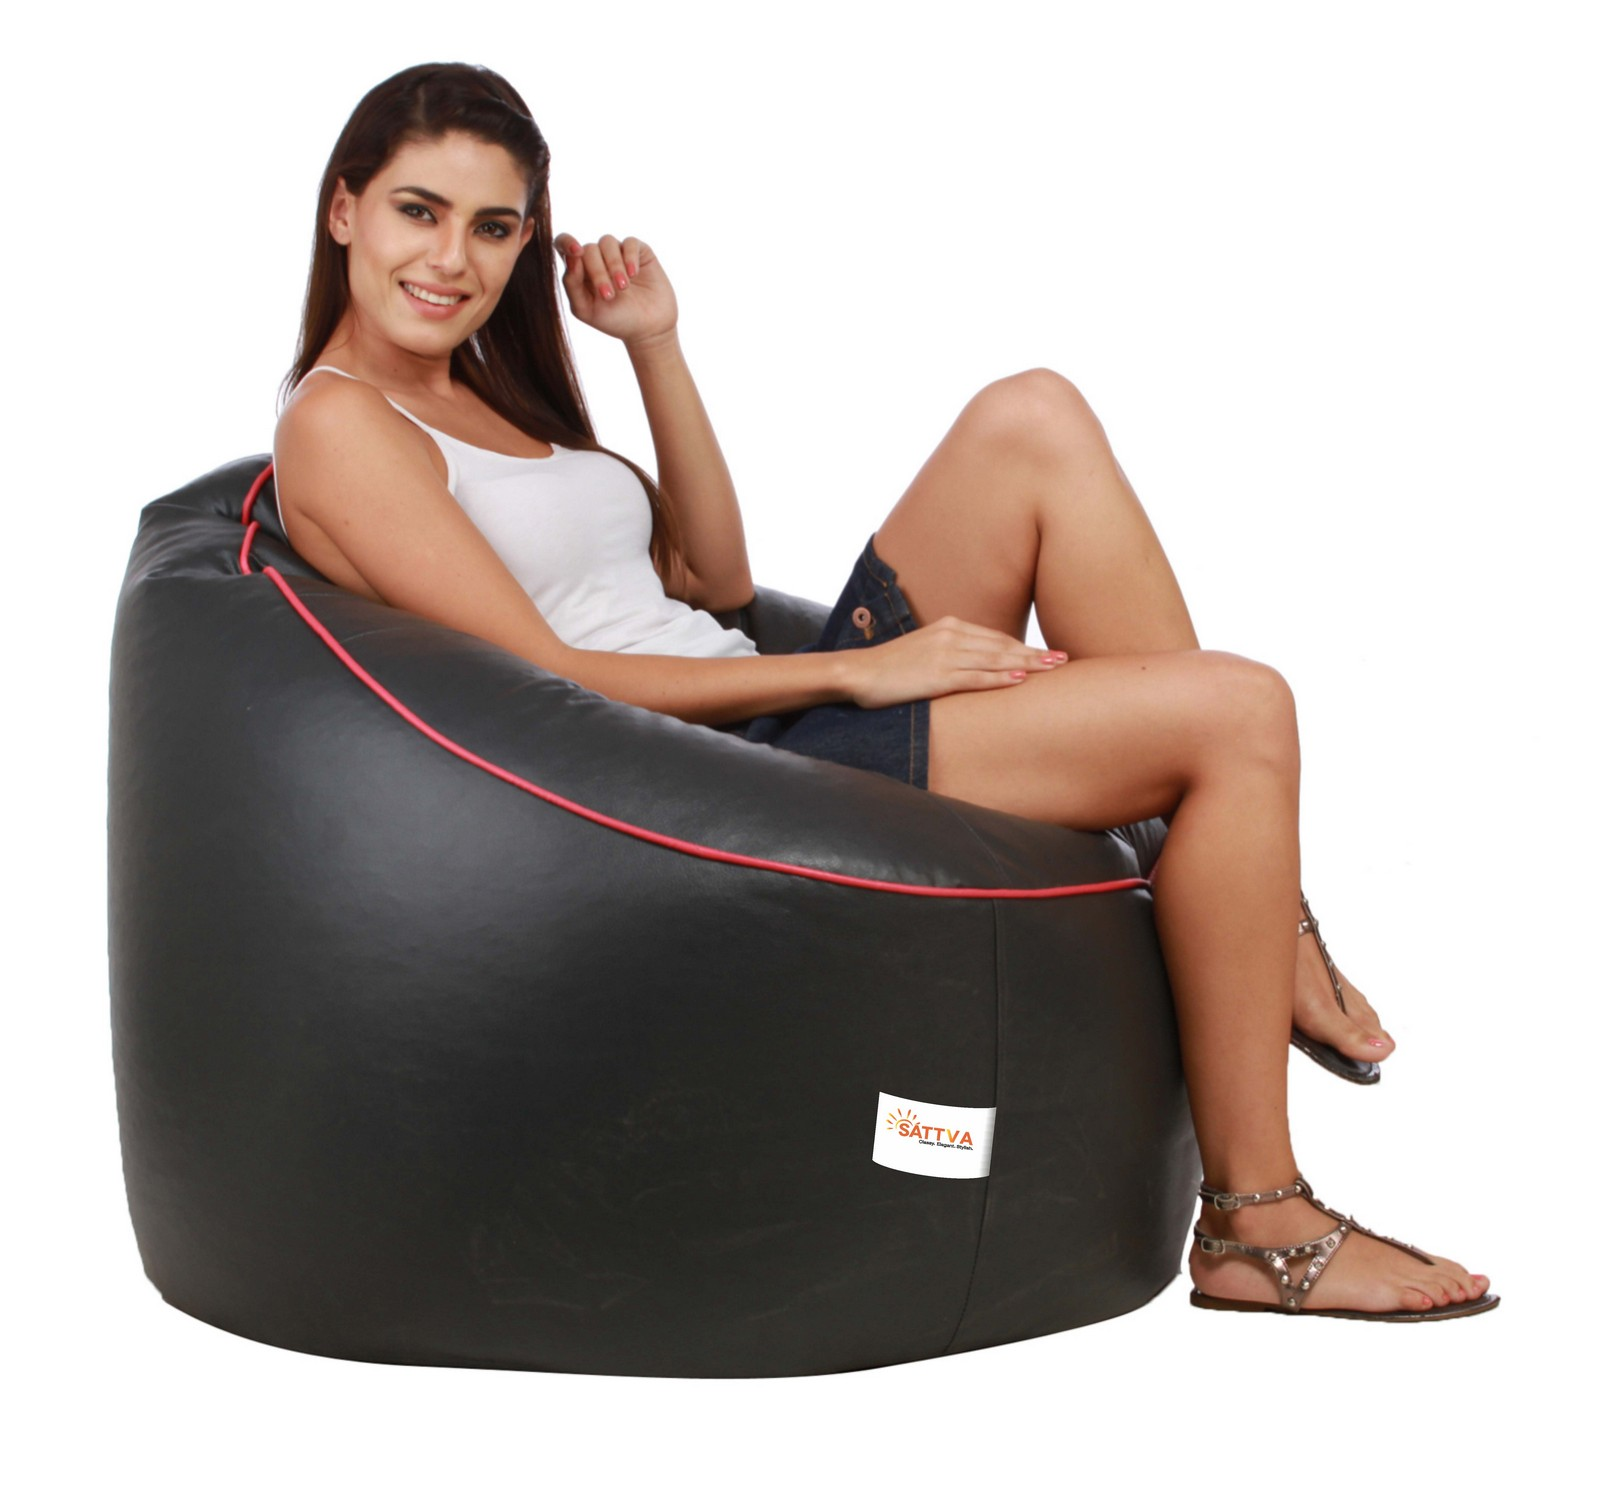 Sattva Muddha Sofa XXXL Bean Bag With Piping Design (with Beans) XXXL - Orange With Navy Blue Piping (XXXL, Black With Pink Piping)